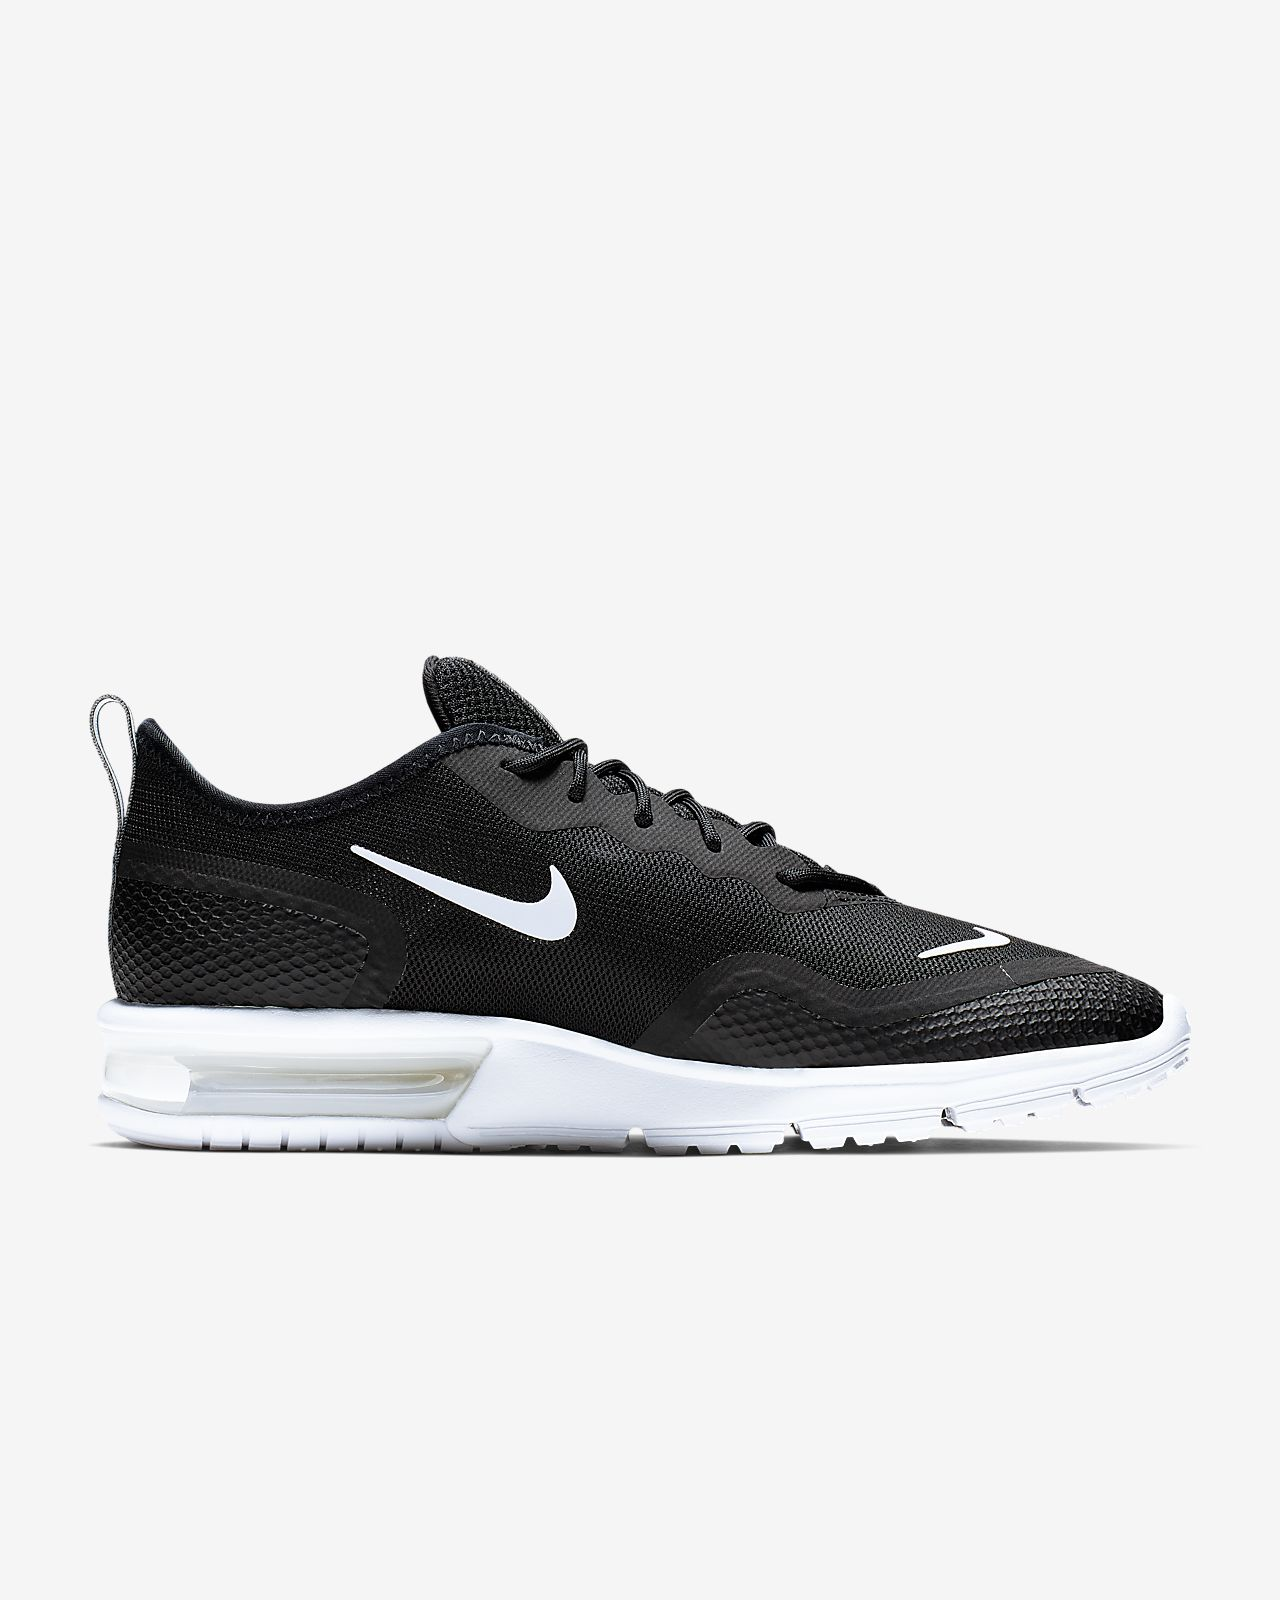 quality design 59a17 804d9 Men s Running Shoe. Nike Air Max Sequent 4.5